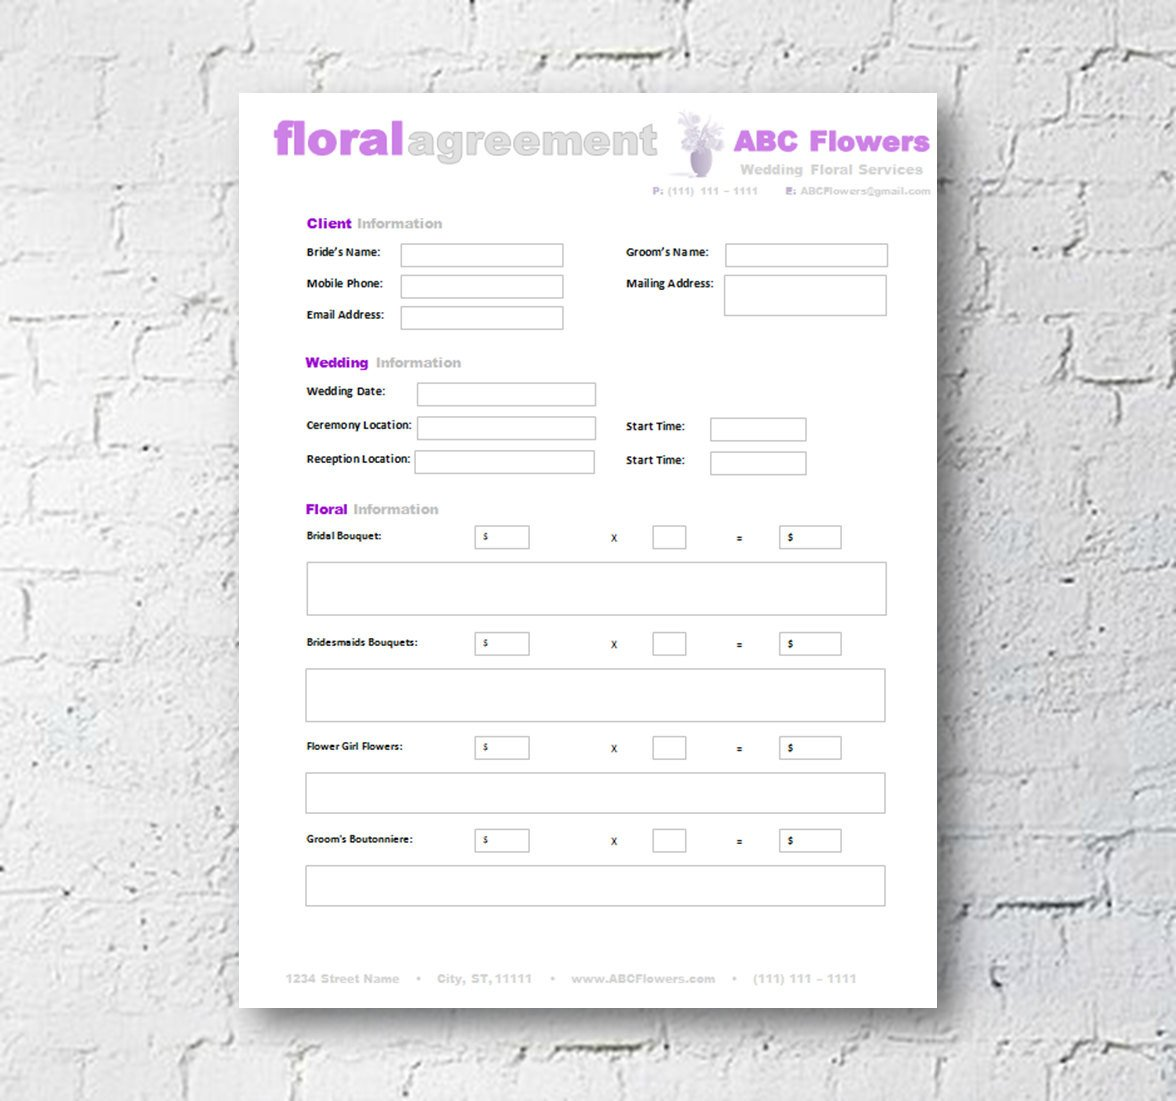 Wedding Florist Contract Template Floral Shop Bridal Agreement Contract Template Editable